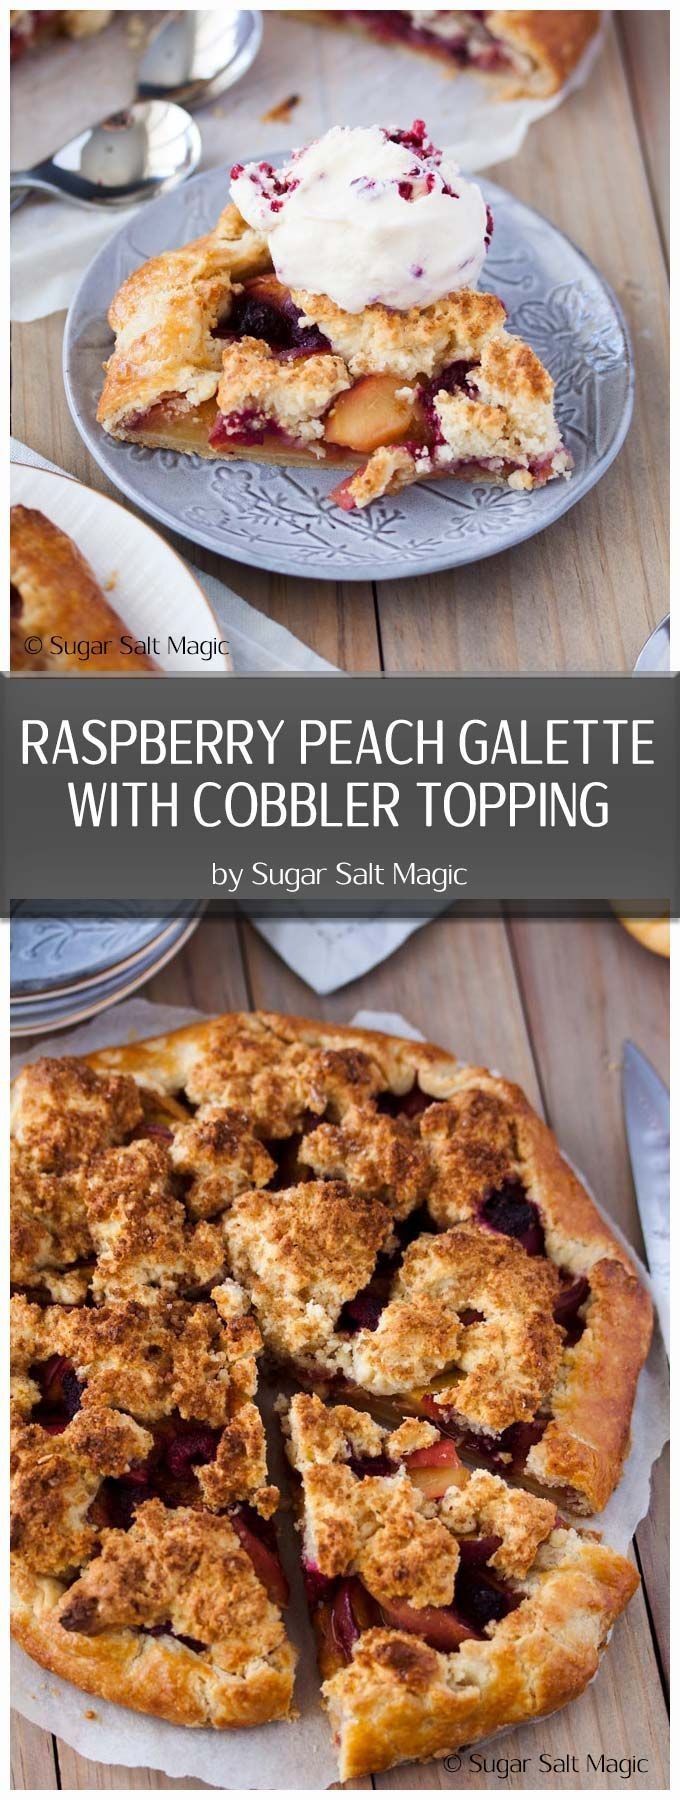 This Raspberry Peach Gallette with Cobbler Topping is a free form tart with an easy peach cobbler filling #peachcobbler #peachgalette   via @sugarsaltmagic